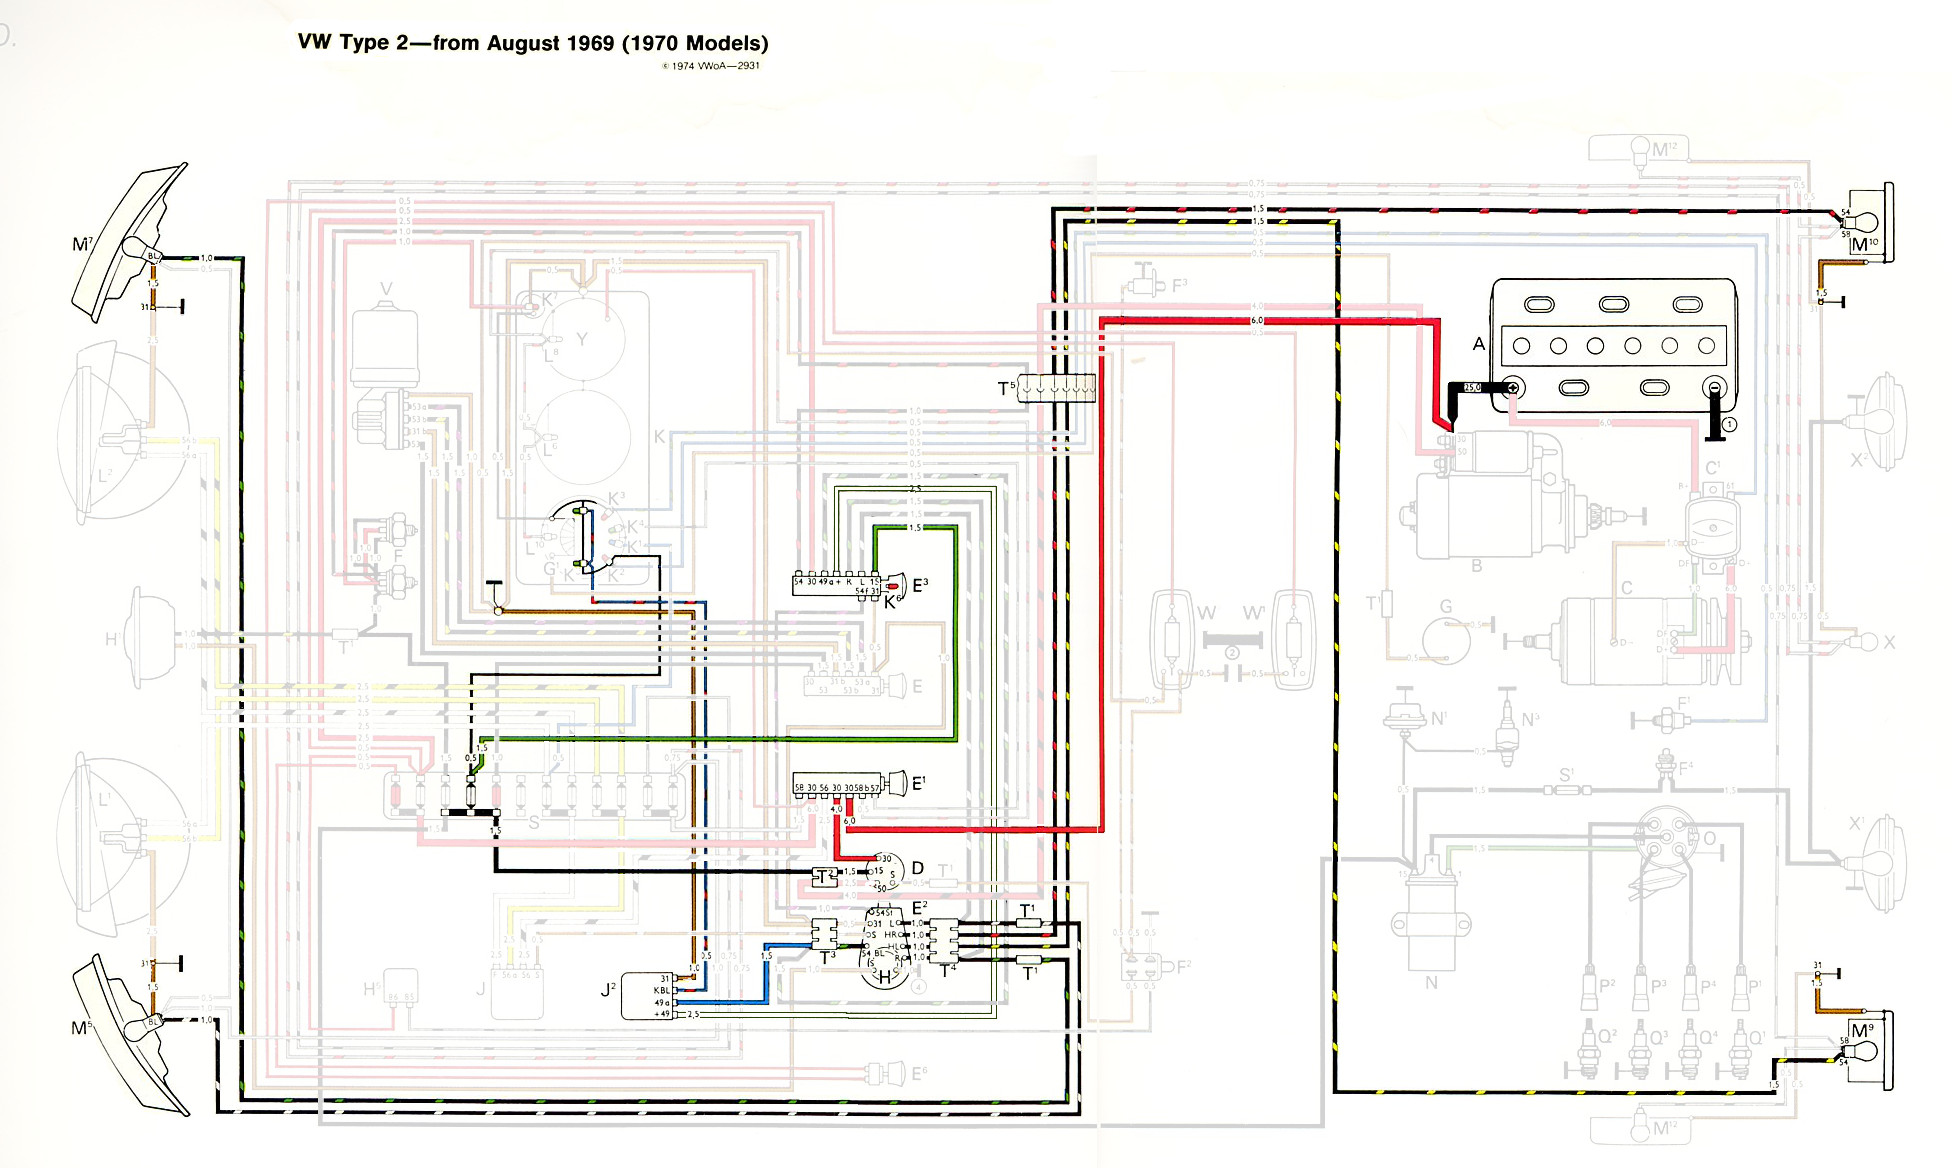 vw distributor diagram, 68 vw wiring diagram, alfa romeo spider wiring diagram, vw starter wiring diagram, fiat uno wiring diagram, vw buggy wiring-diagram, volkswagen fuel diagram, 1967 vw wiring diagram, 1974 vw engine diagram, vw turn signal wiring diagram, vw light switch wiring, type 3 wiring diagram, 1973 vw wiring diagram, vw beetle engine diagram, vw beetle fuel injection diagram, 1963 vw wiring diagram, vw rabbit wiring-diagram, porsche cayenne wiring diagram, vw type 2 wiring diagram, 1999 vw passat wiring diagram, on vw beetle indicator wiring diagram